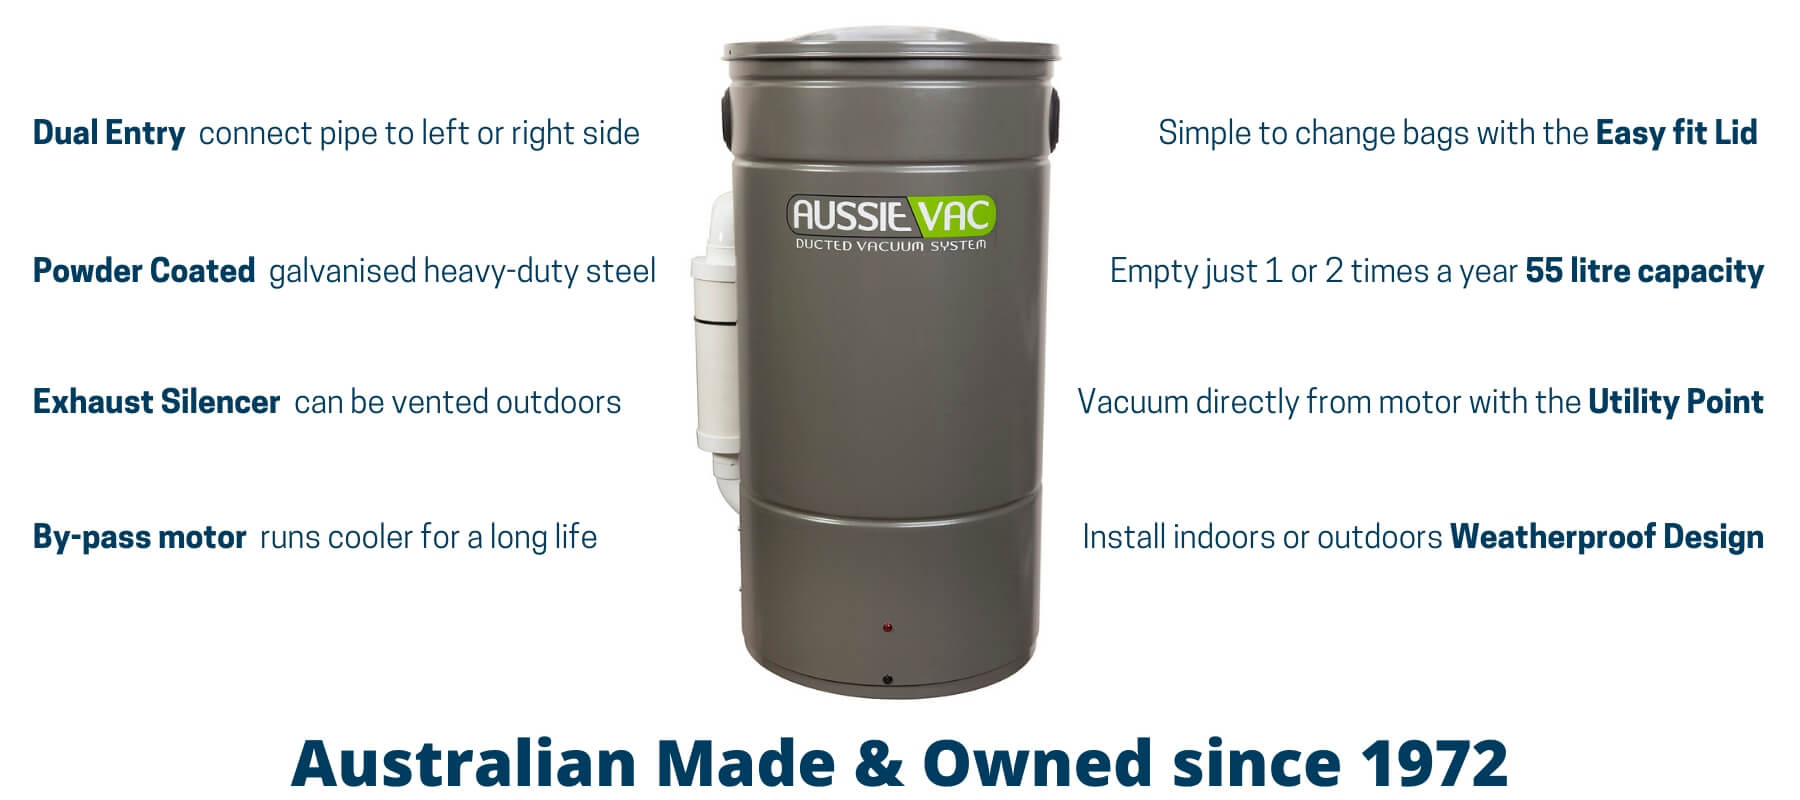 Aussie Vac Design Features